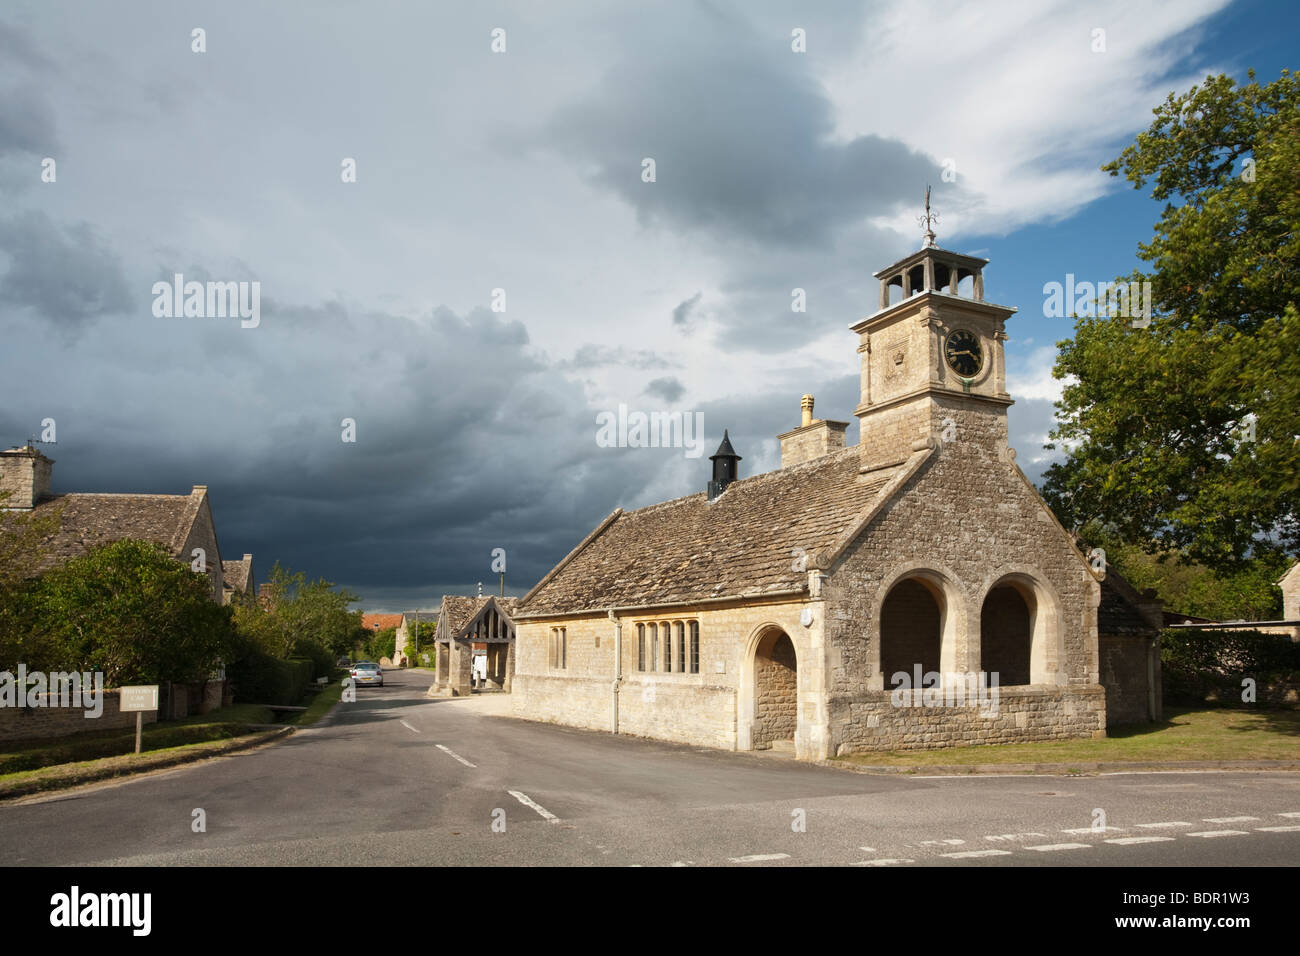 The Village Hall at Buscot in Oxfordshire, Uk - Stock Image